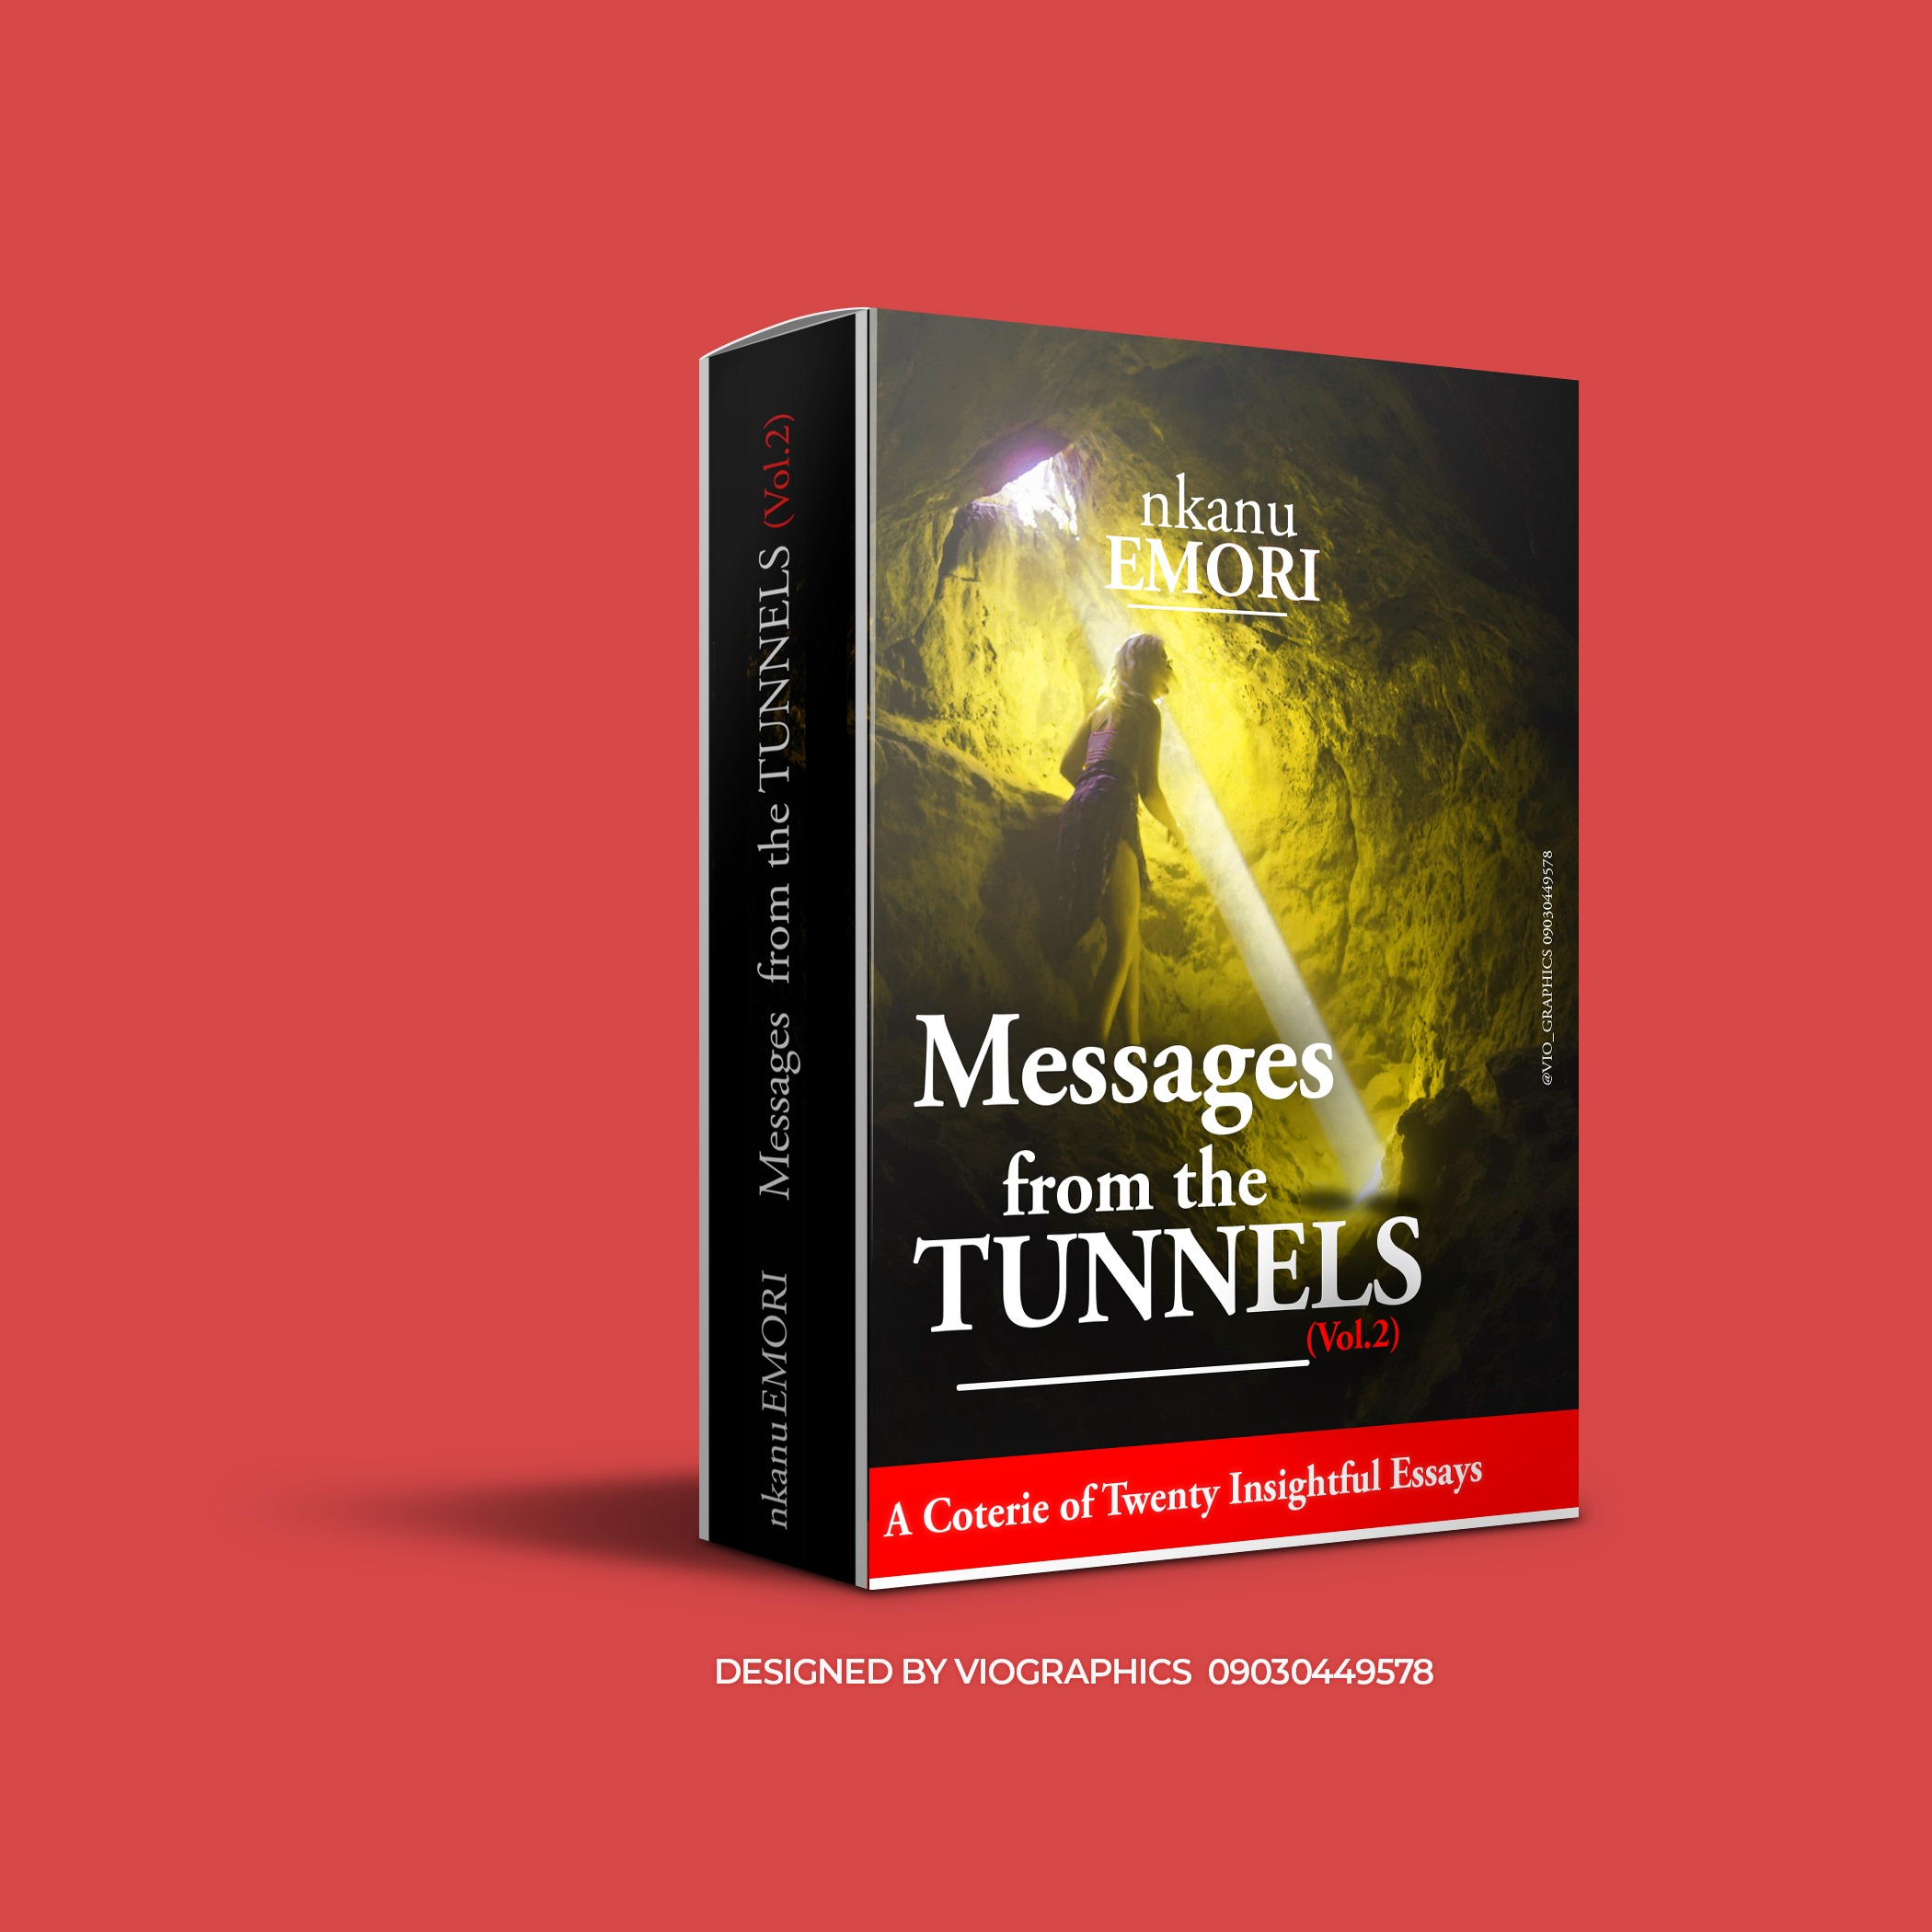 MESSAGES FROM THE TUNNELS (VOL. 2)